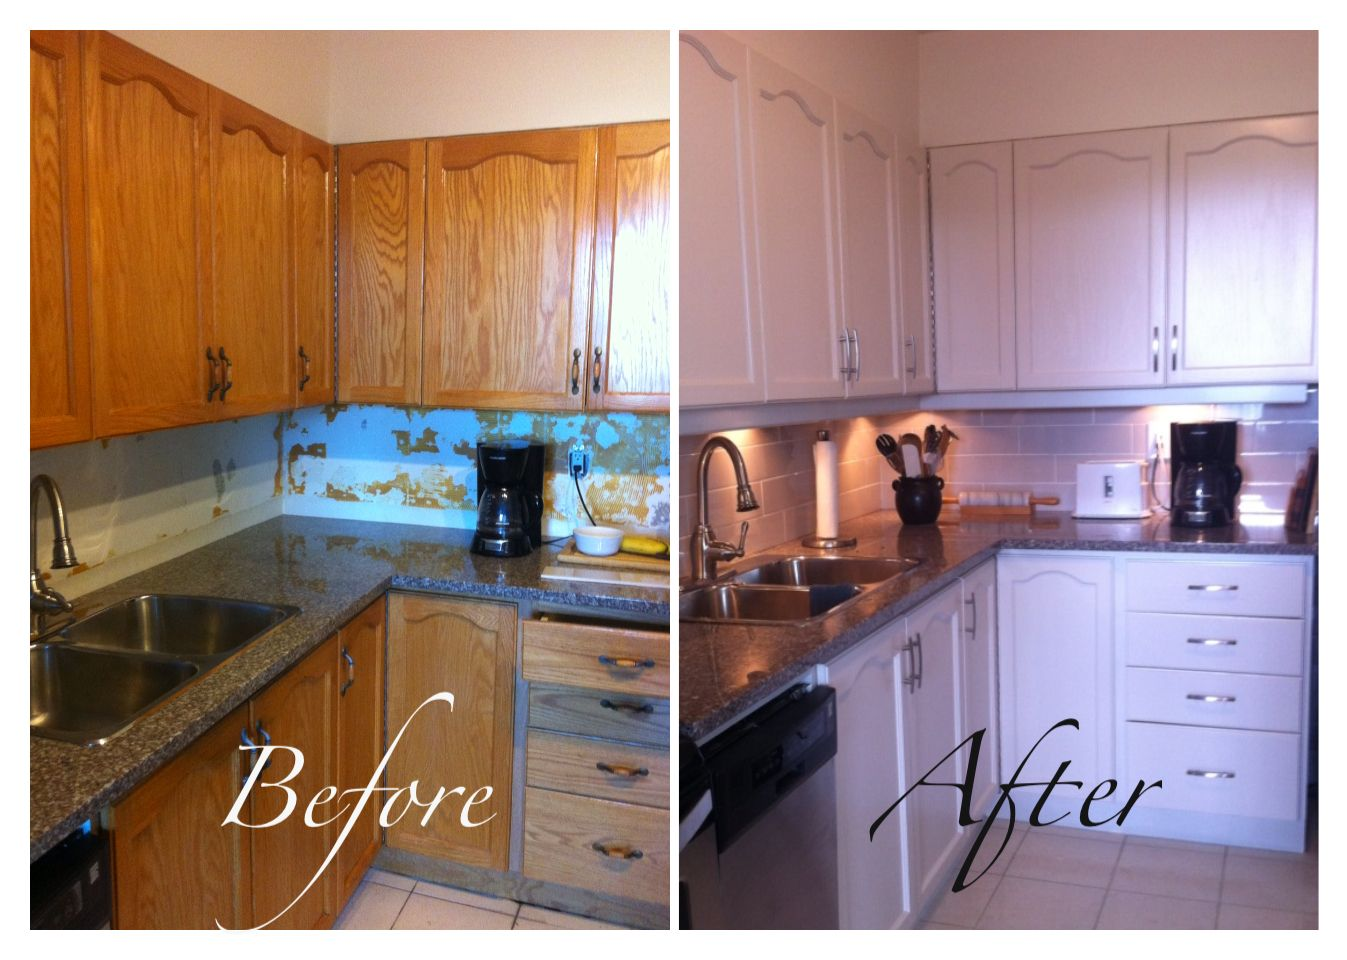 Oak Cabinets Painted Benjamin Moore Silver Satin Oc 26 Kitchen Cabinet Remodel Kitchen Cabinet Trends Kitchen Cabinets